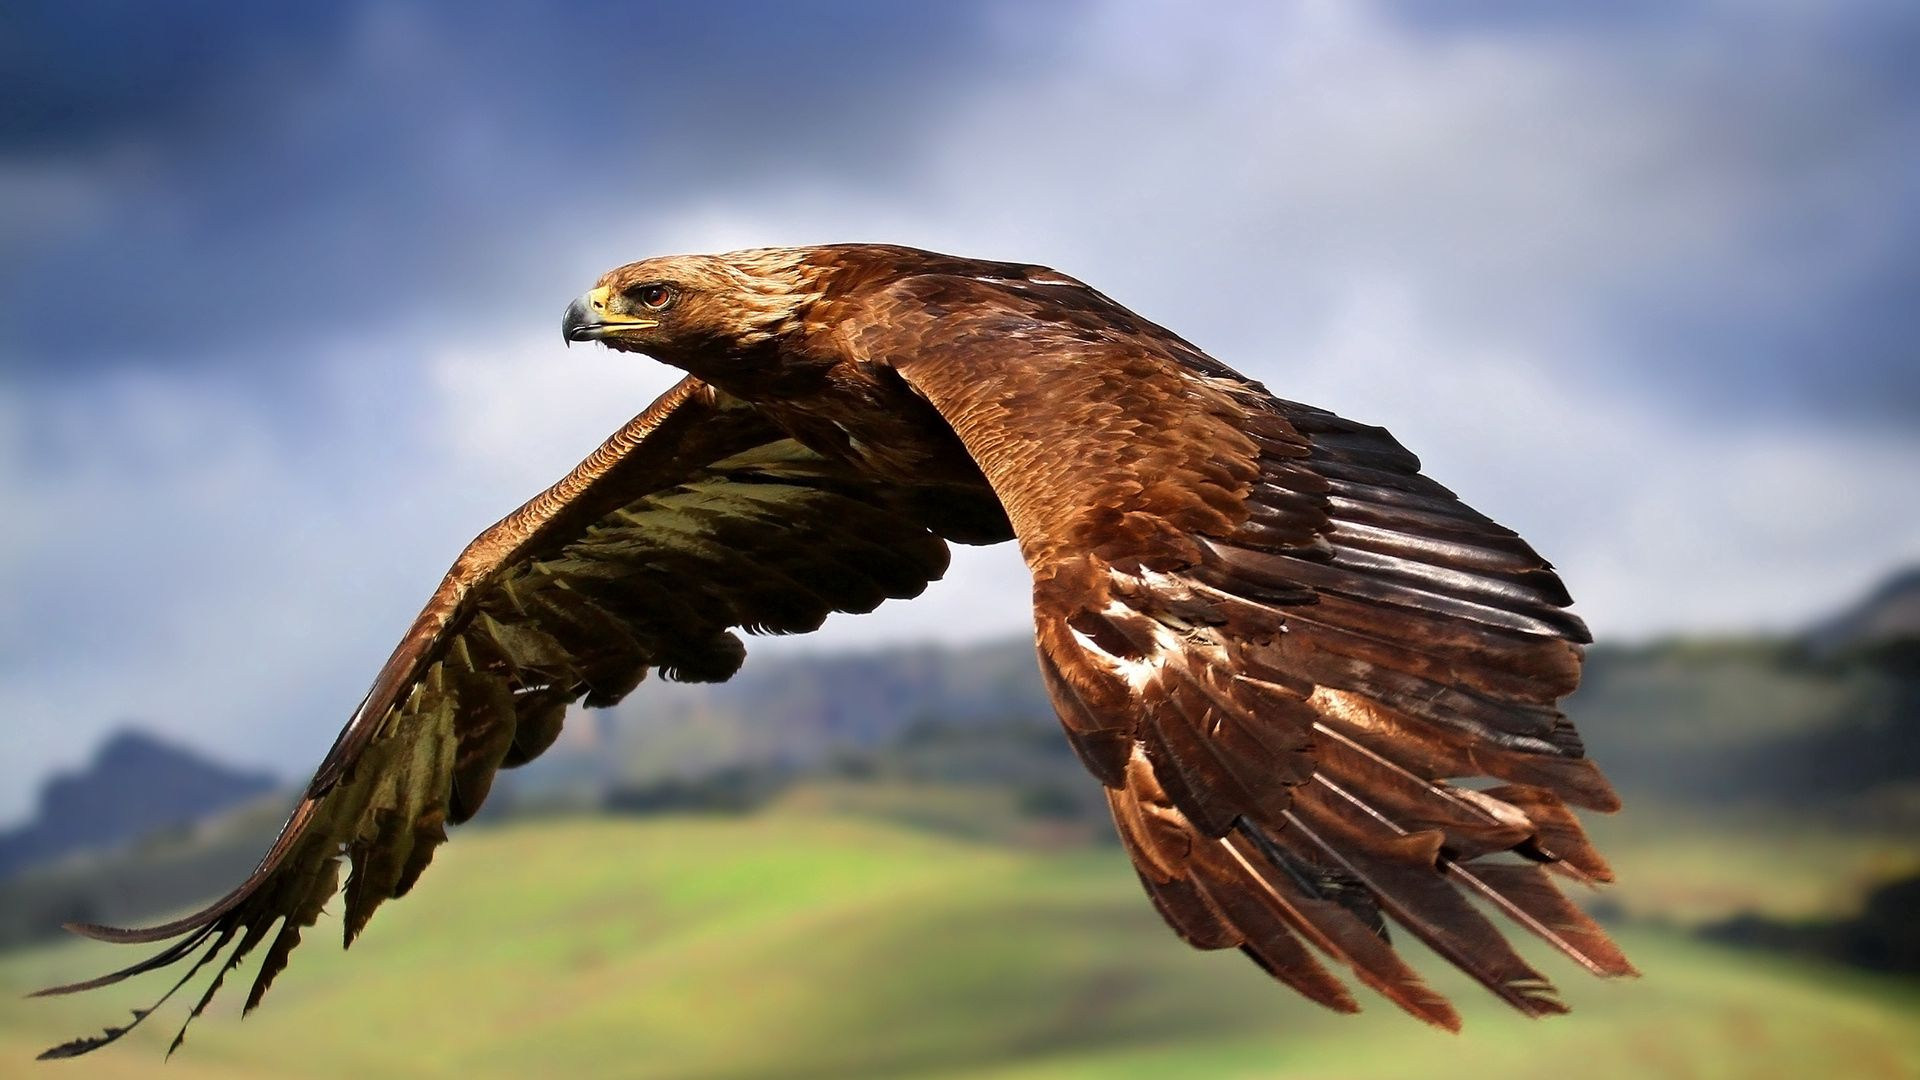 51424 Screensavers and Wallpapers Bird for phone. Download Animals, Sky, Bird, Predator, Flight, Eagle pictures for free